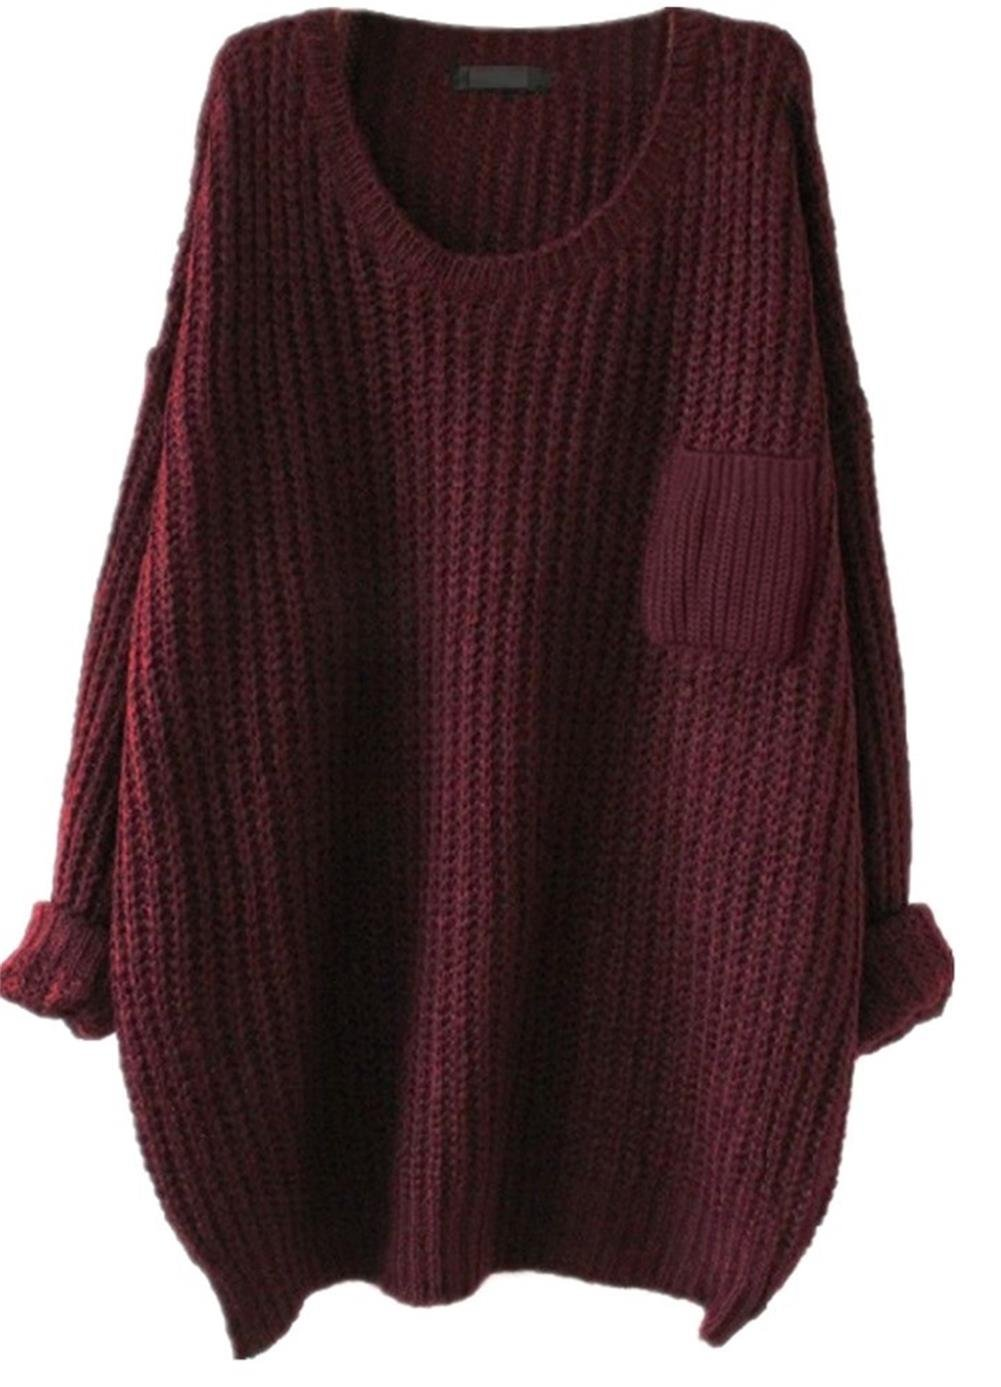 Women's Casual Unbalanced Crew Neck Knit Sweater Loose Pullover Cardigan (Burgundy)